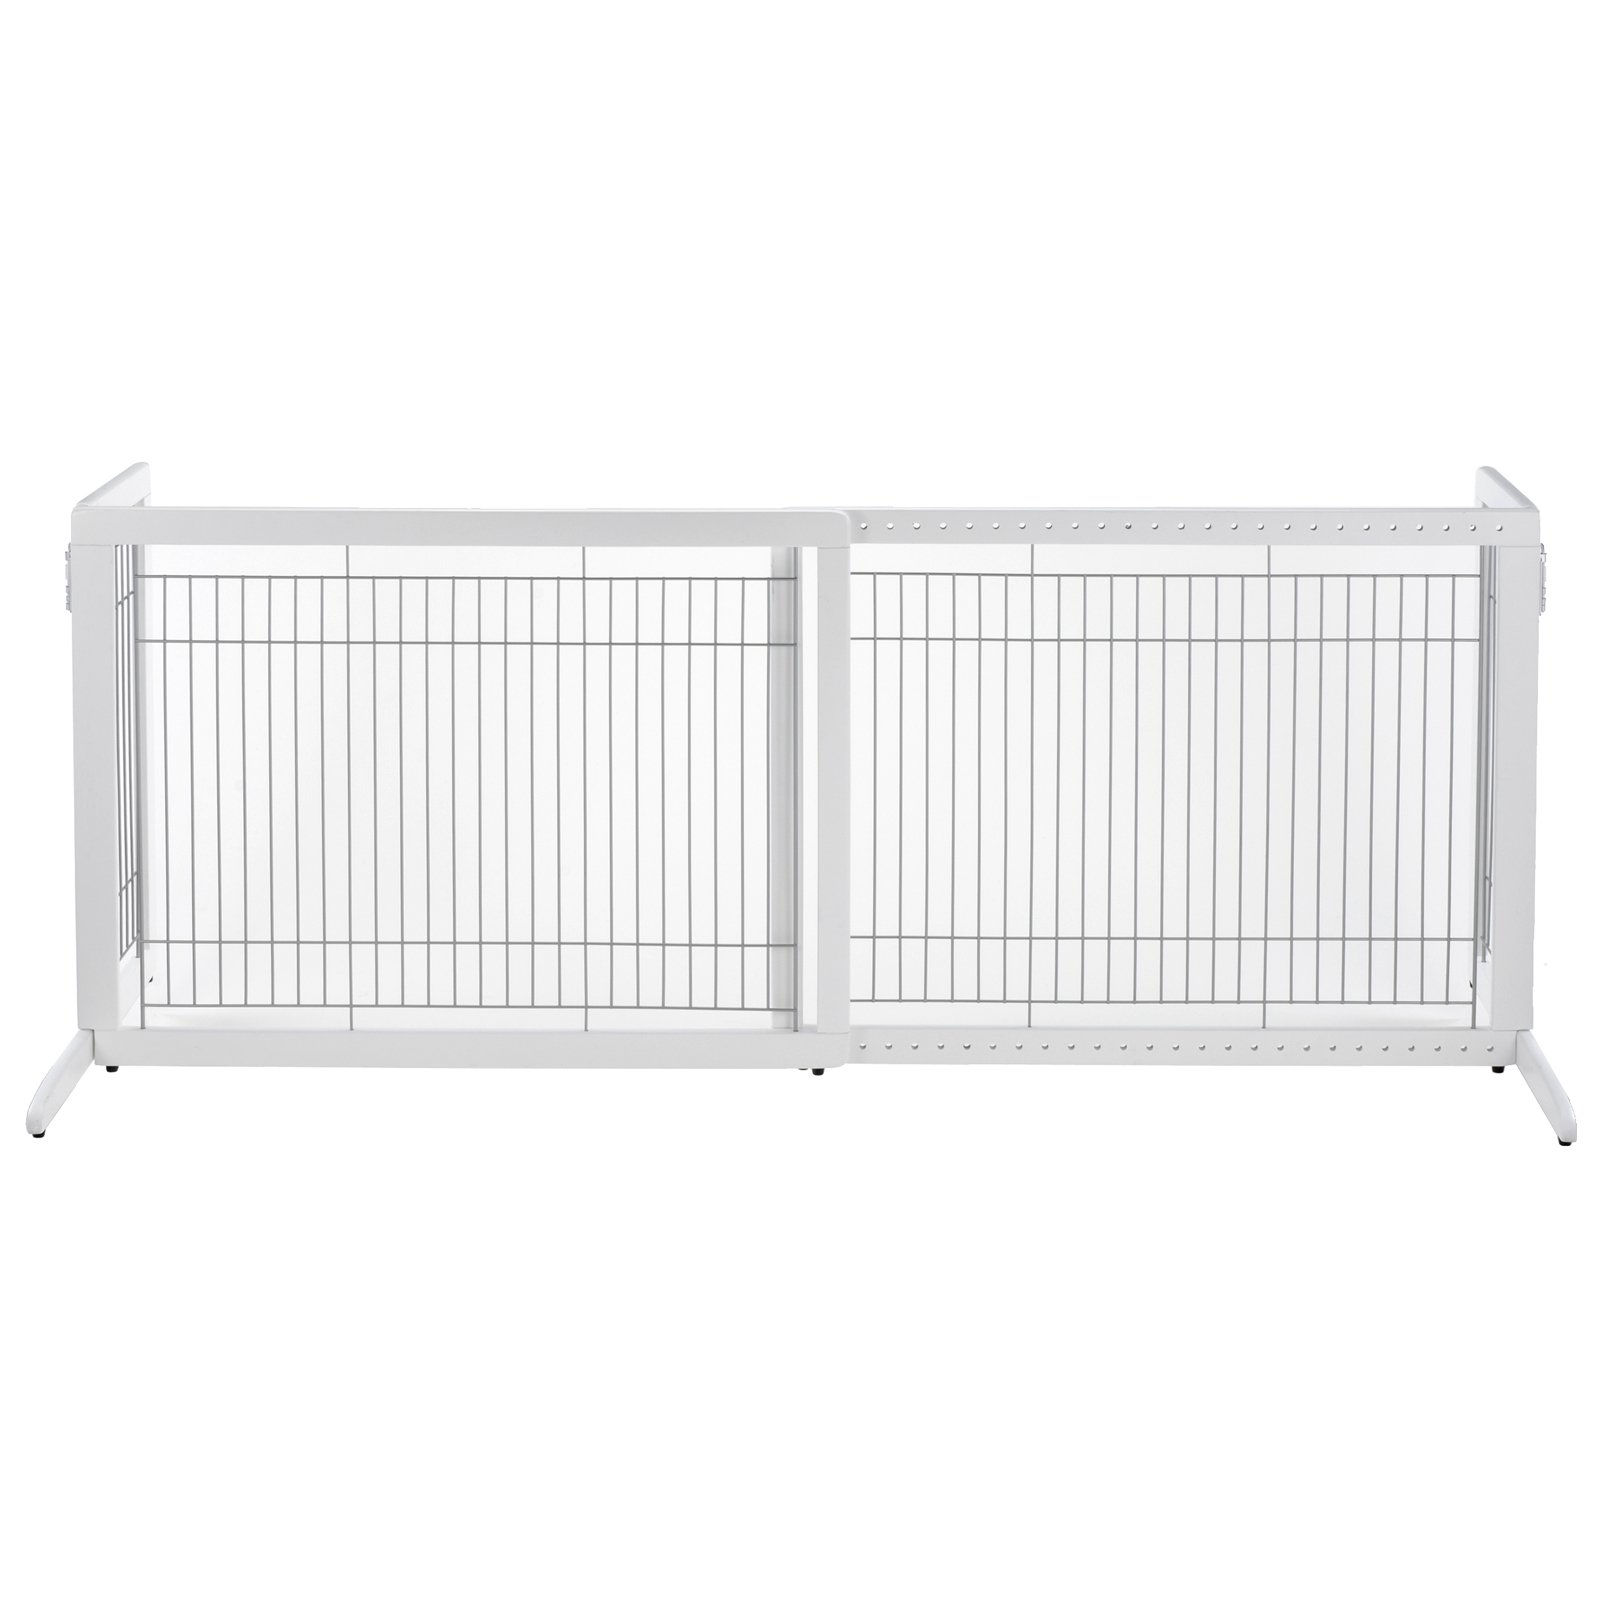 Richell Freestanding HL Pet Gate, Origami White